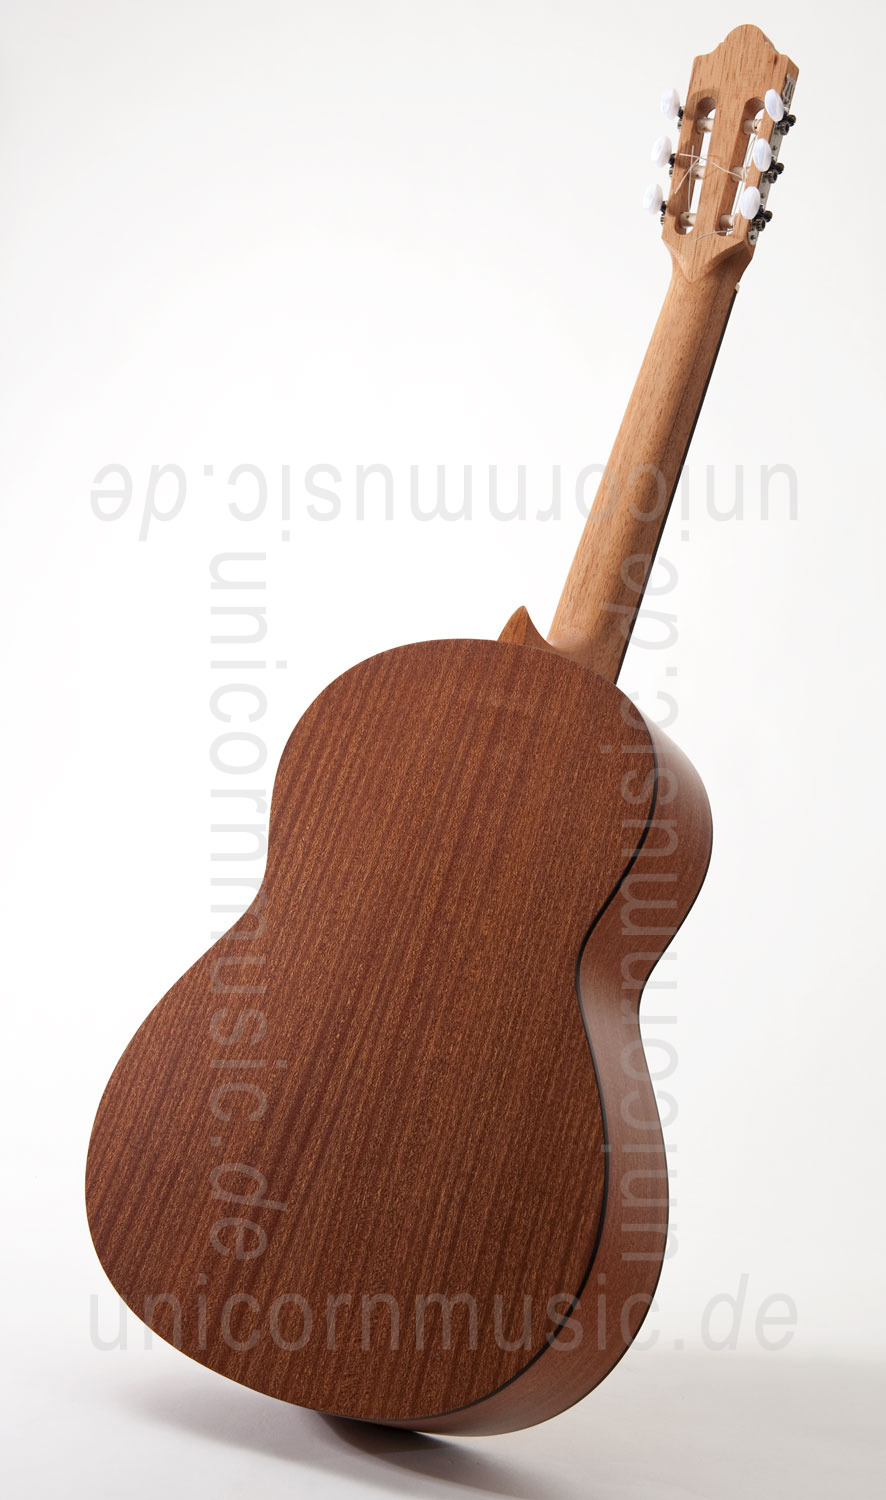 to article description / price Spanish Classical Guitar CAMPS RONDA - laminated top